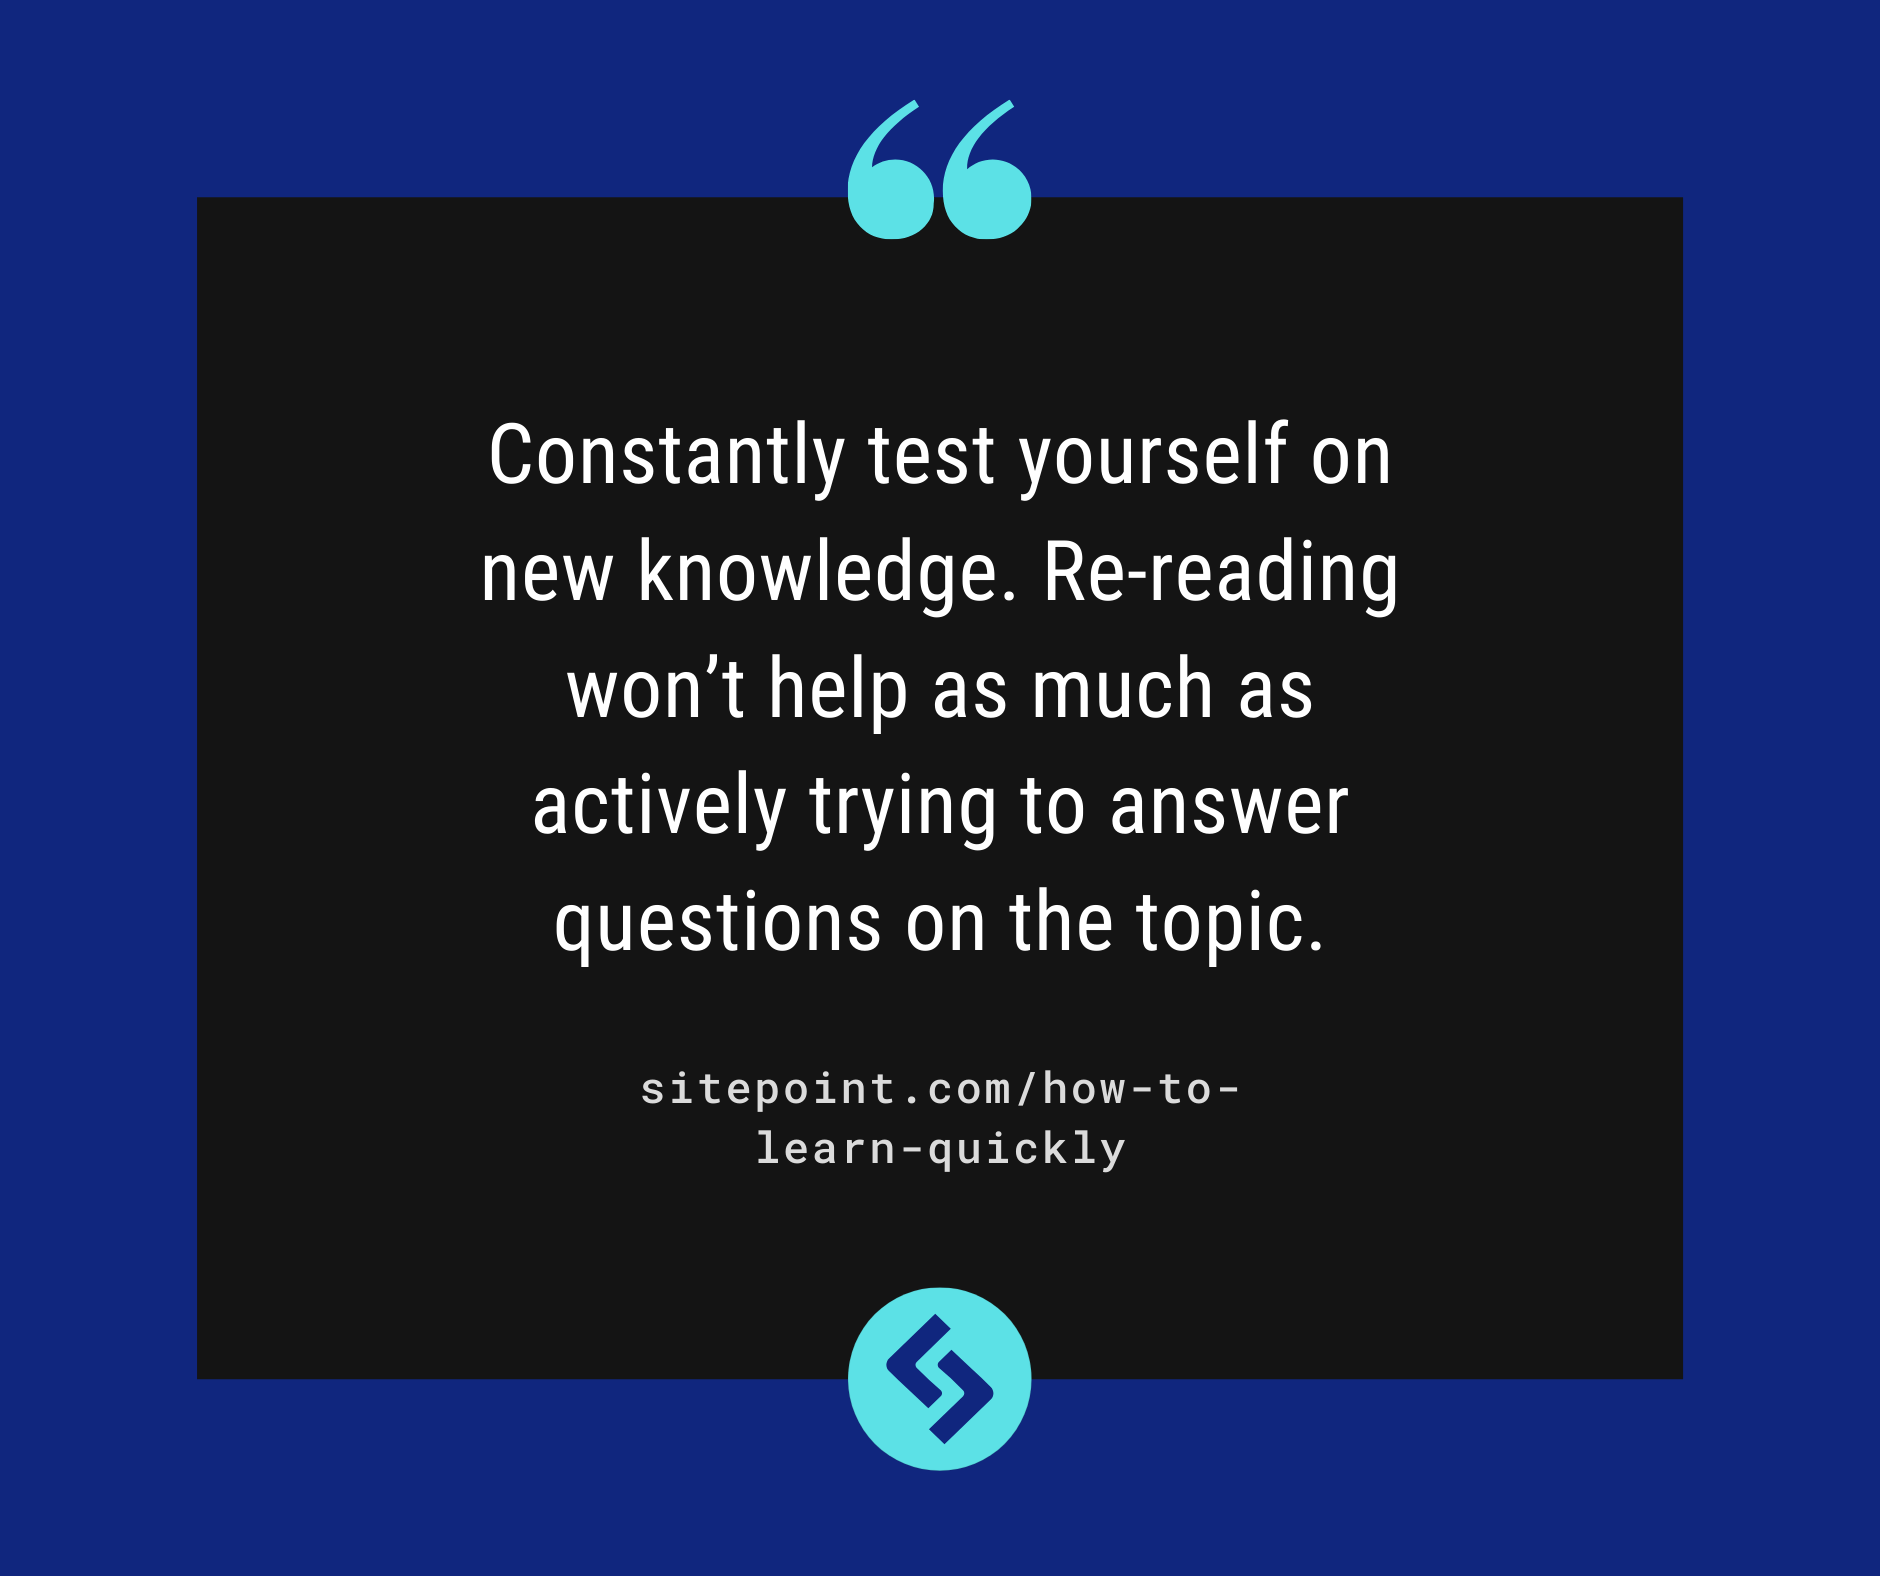 Constantly test yourself on new knowledge. Re-reading won't help as much as actively trying to answer questions on the topic.